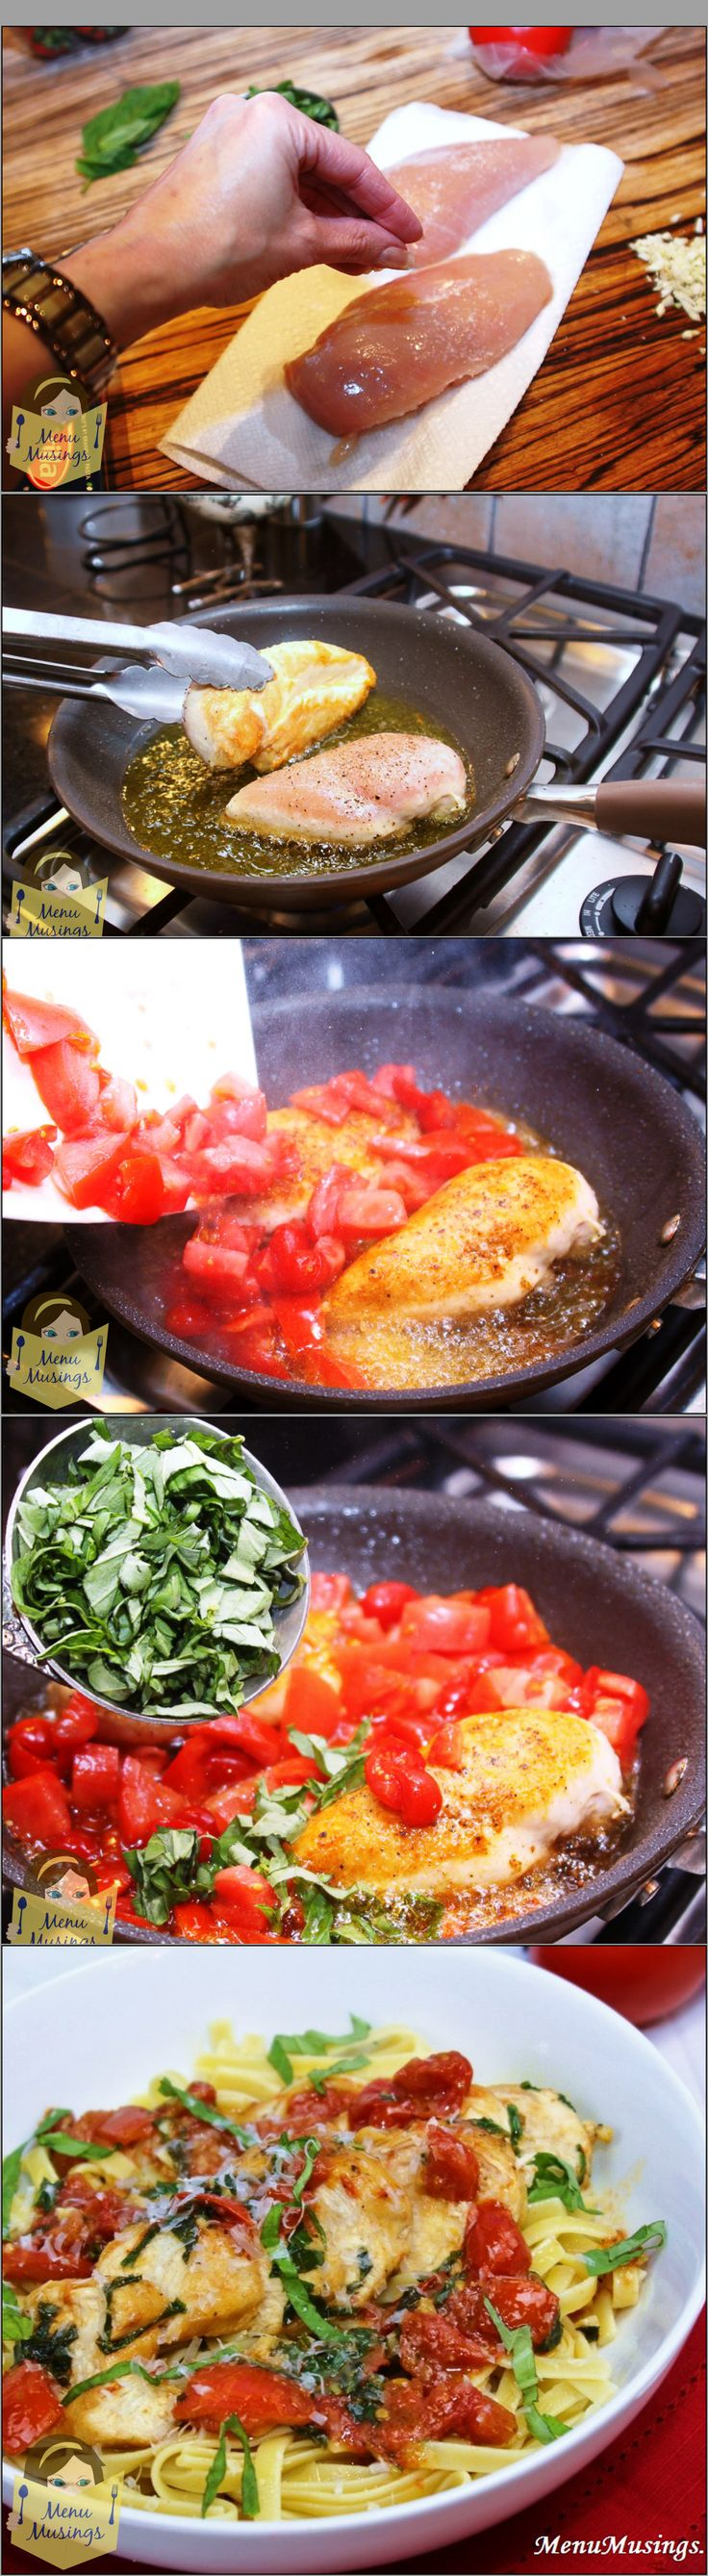 Tomato Basil Chicken - over 700K people can't be wrong! This step-by-step photo recipe is a huge hit with families, date night, and company.. and comes in under 30 minutes with all fresh ingredients.